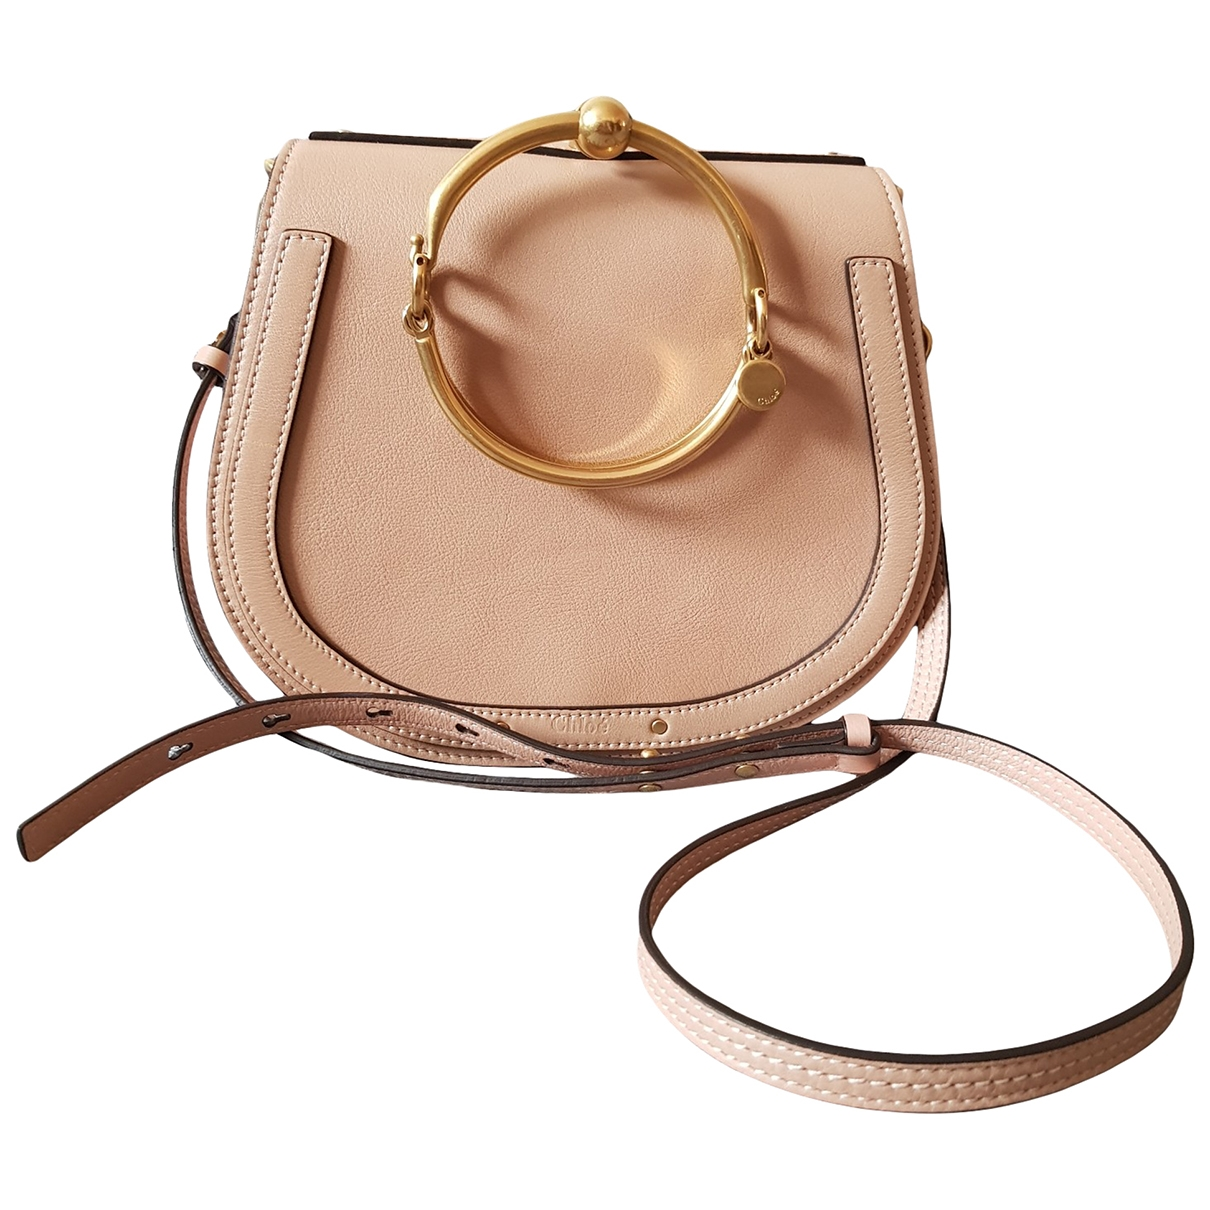 Chloé Bracelet Nile Pink Leather handbag for Women \N